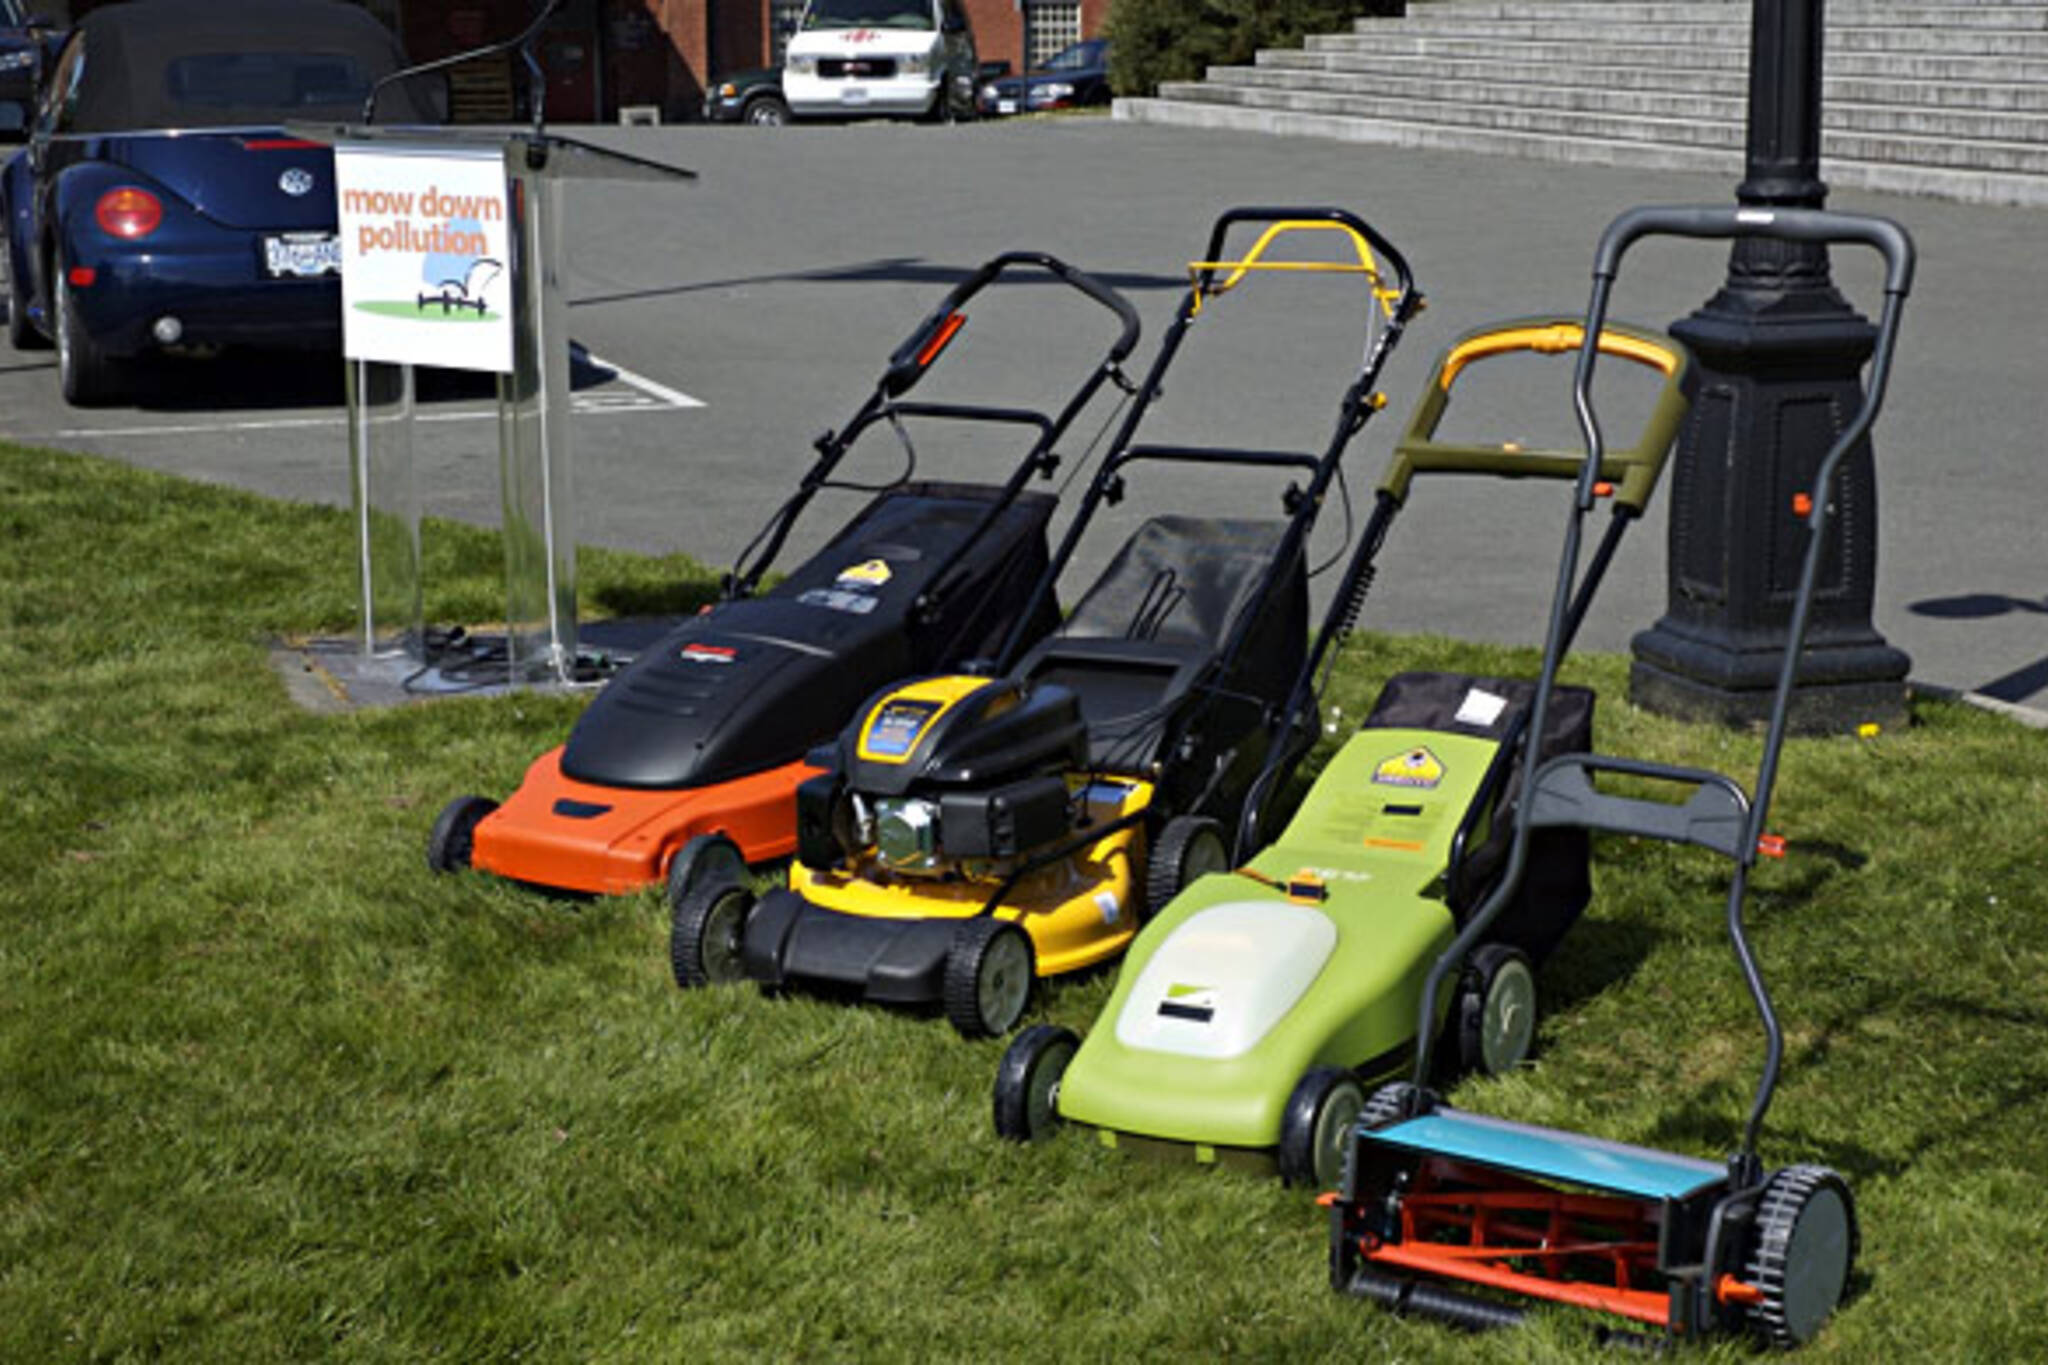 Eco-friendly lawn mowers at Mow Down Pollution event launch